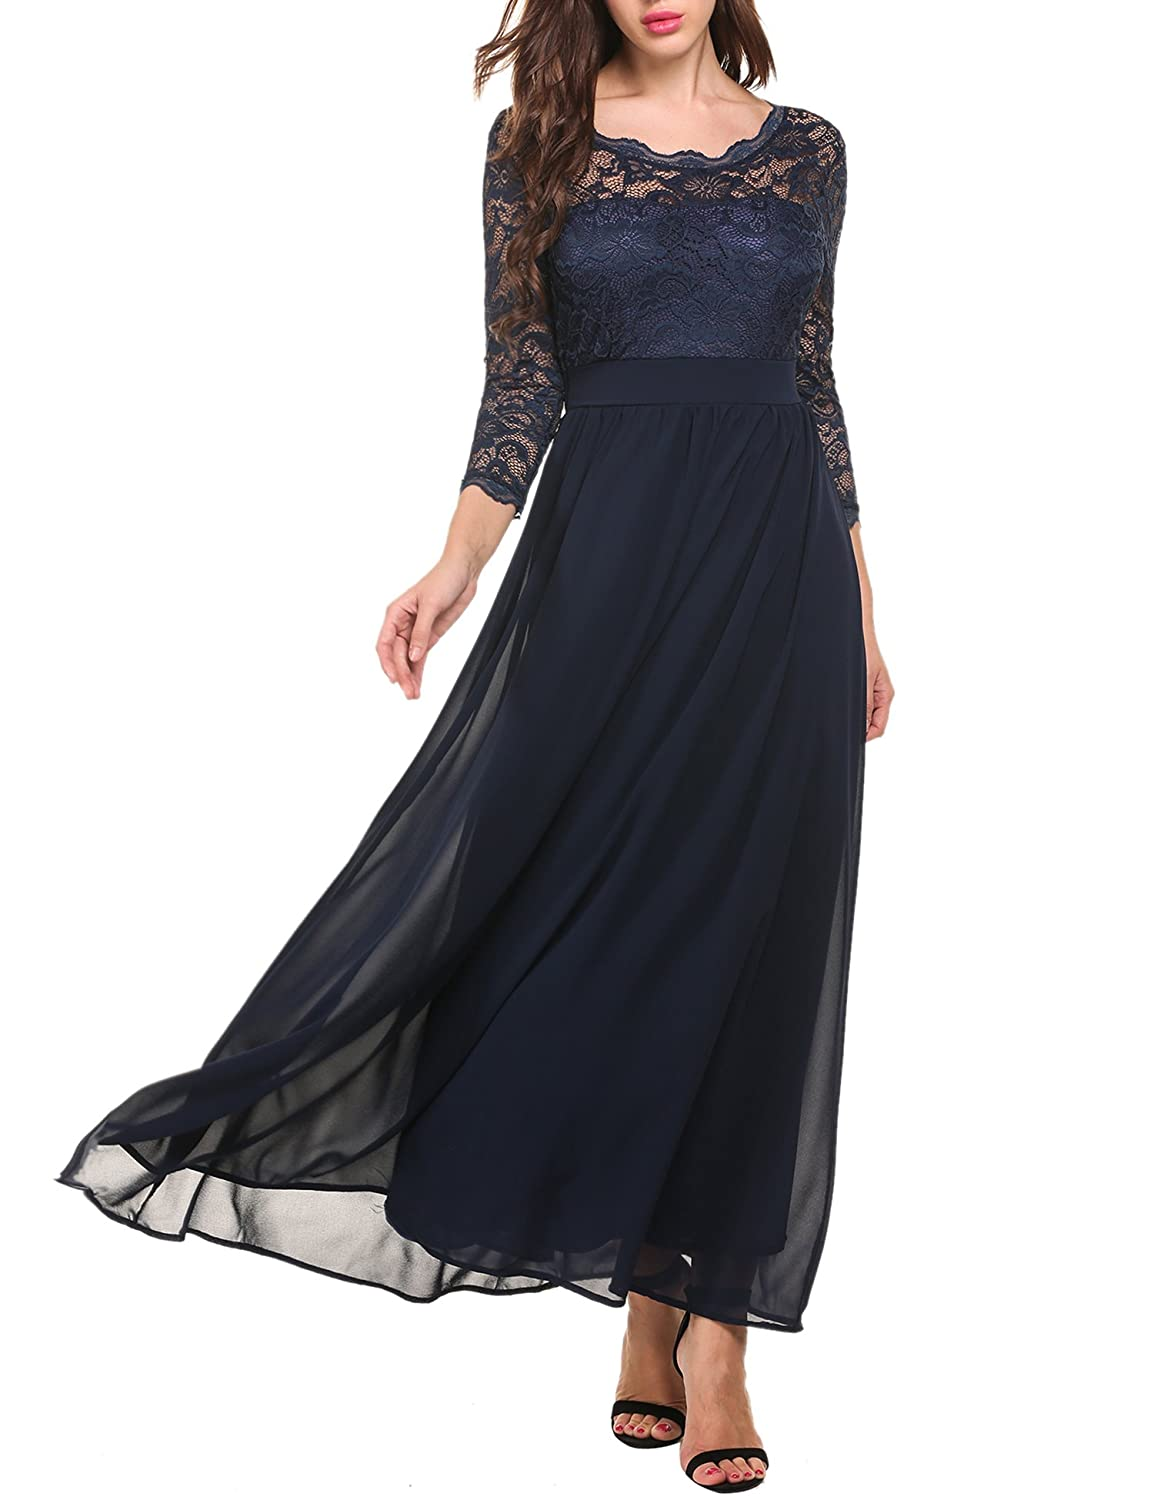 1940s Evening, Prom, Party, Cocktail Dresses & Ball Gowns Floral Lace 2/3 Sleeves Long Formal Evening Dress Maxi Dress $34.99 AT vintagedancer.com